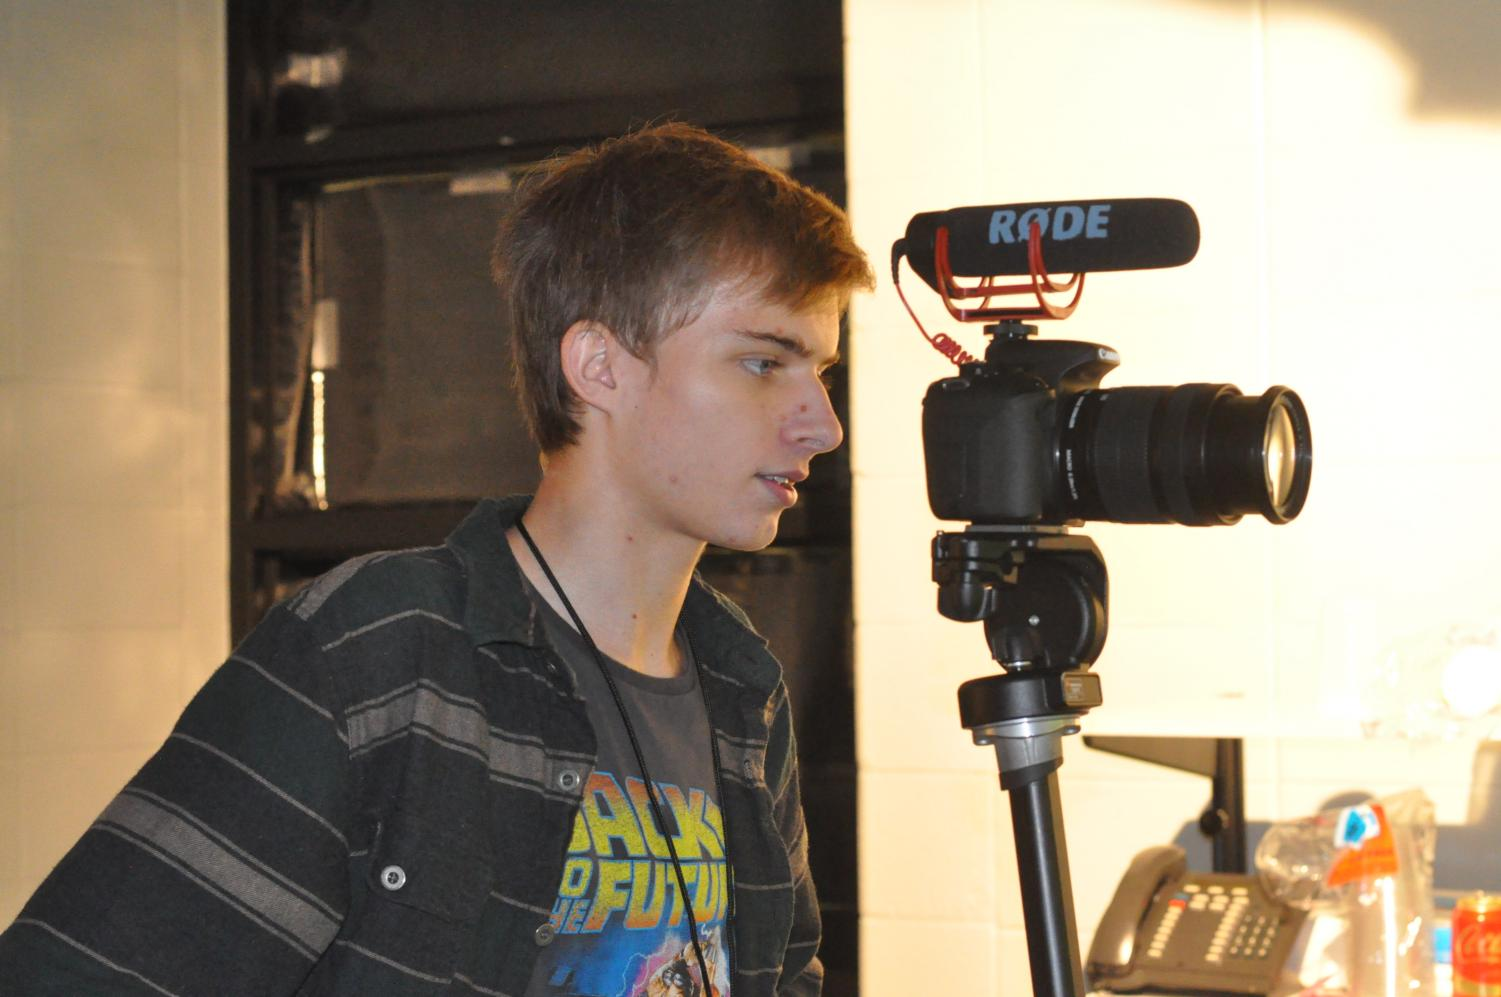 Elijah Monks, a senior who has been involved with Audio-Visual Production since he was a sophomore, checks to make sure the video he is filming has good lighting. The students used to create monthly program called KPARK News.